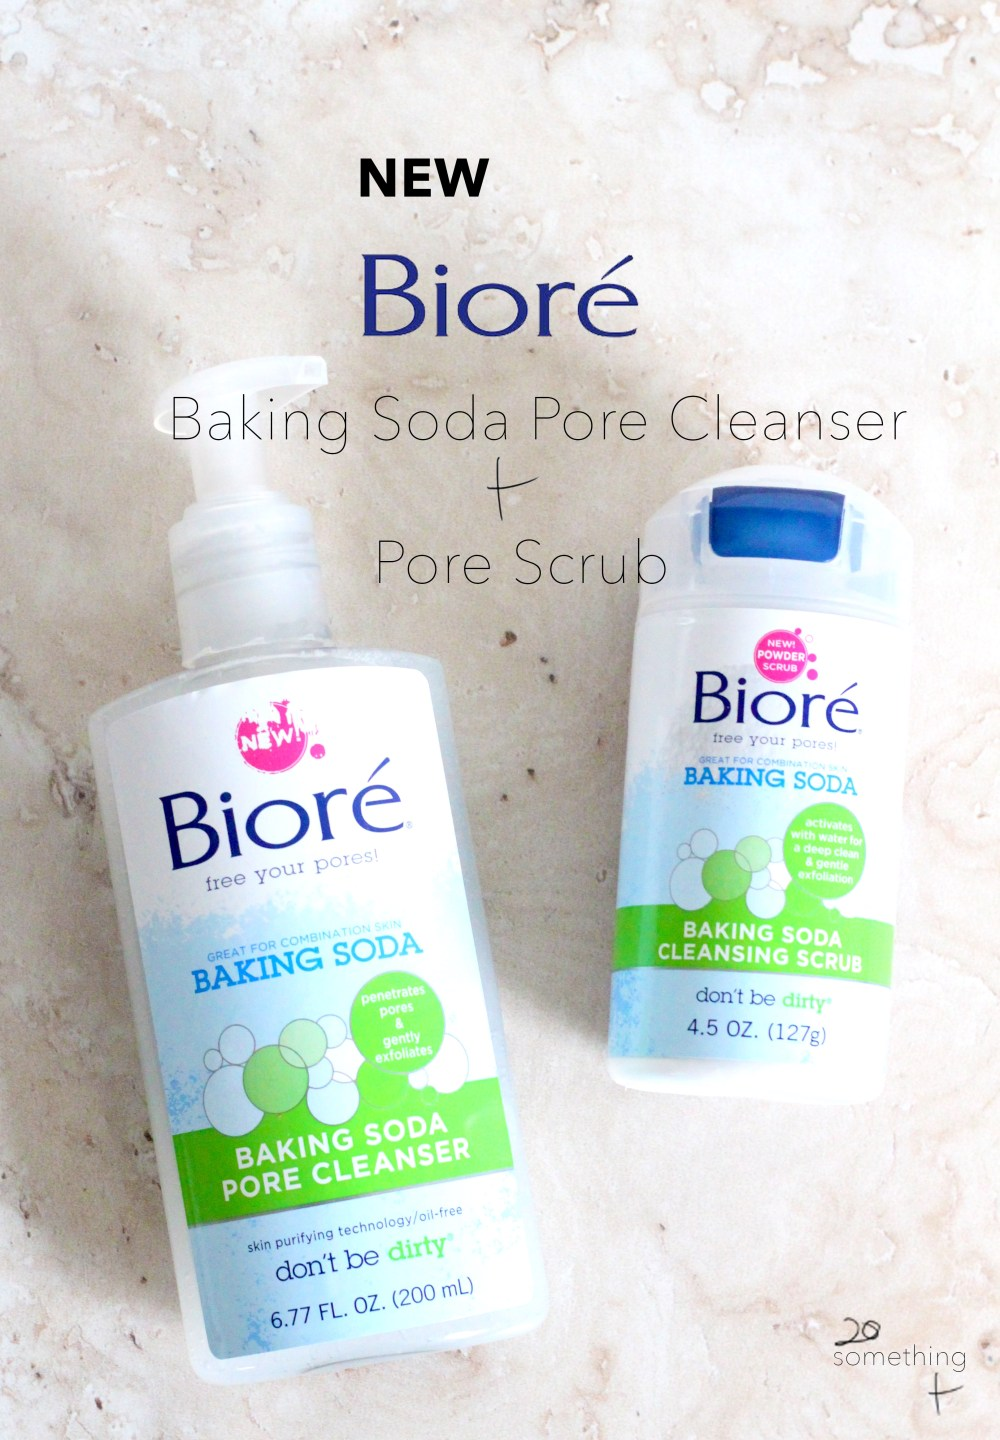 New Bioré Baking Soda Cleanser